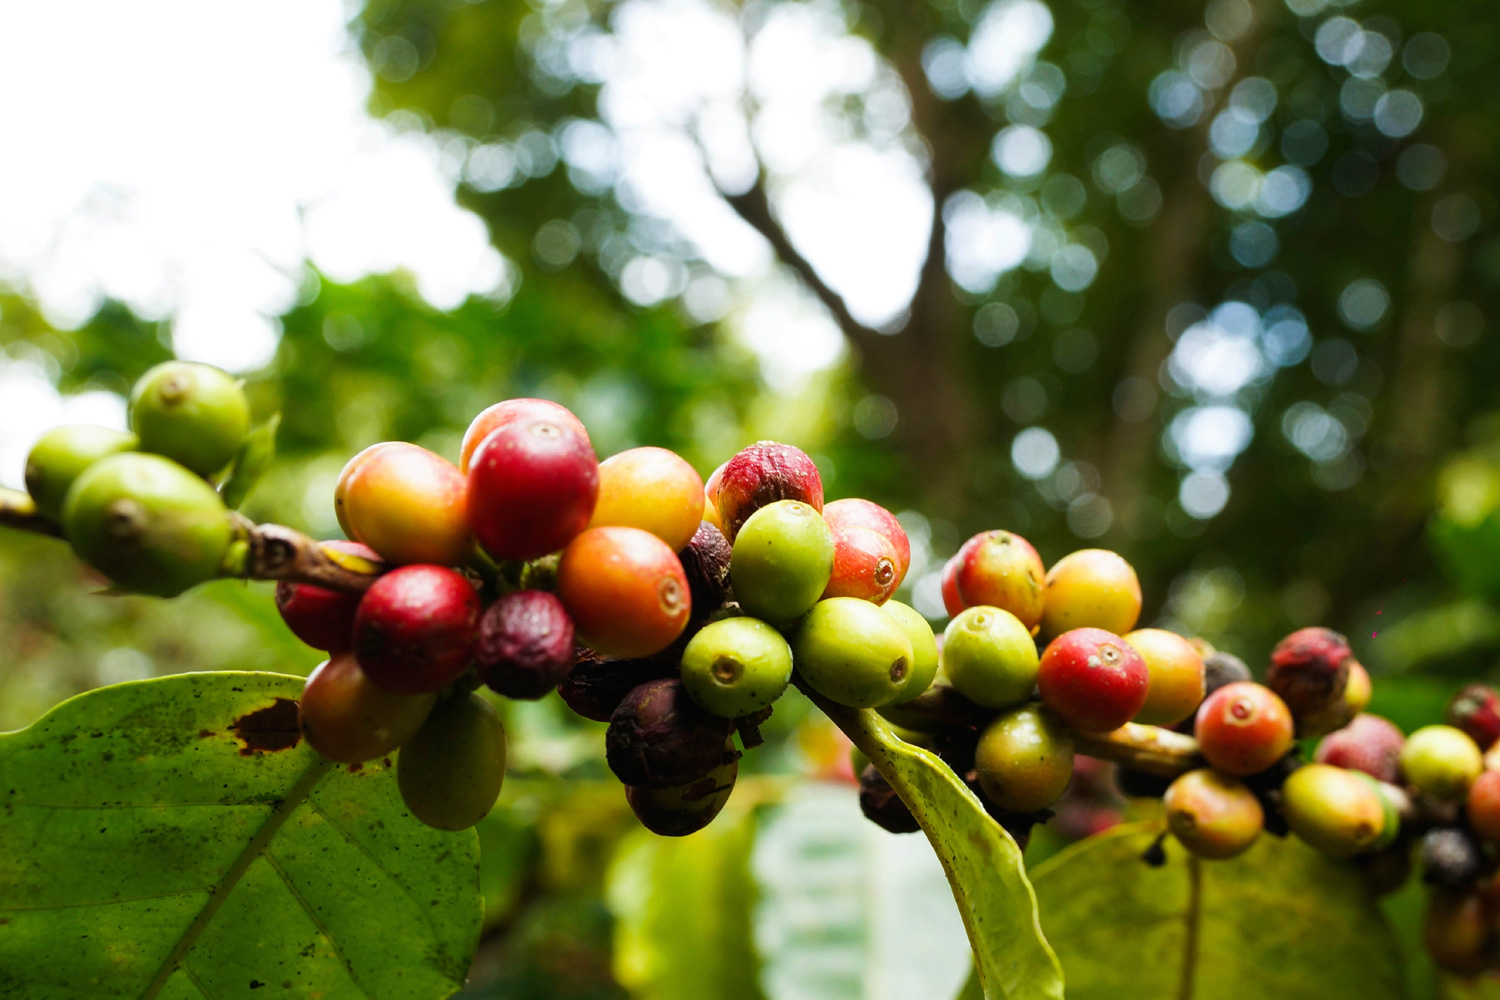 red-bean-coffee-production-08.jpg